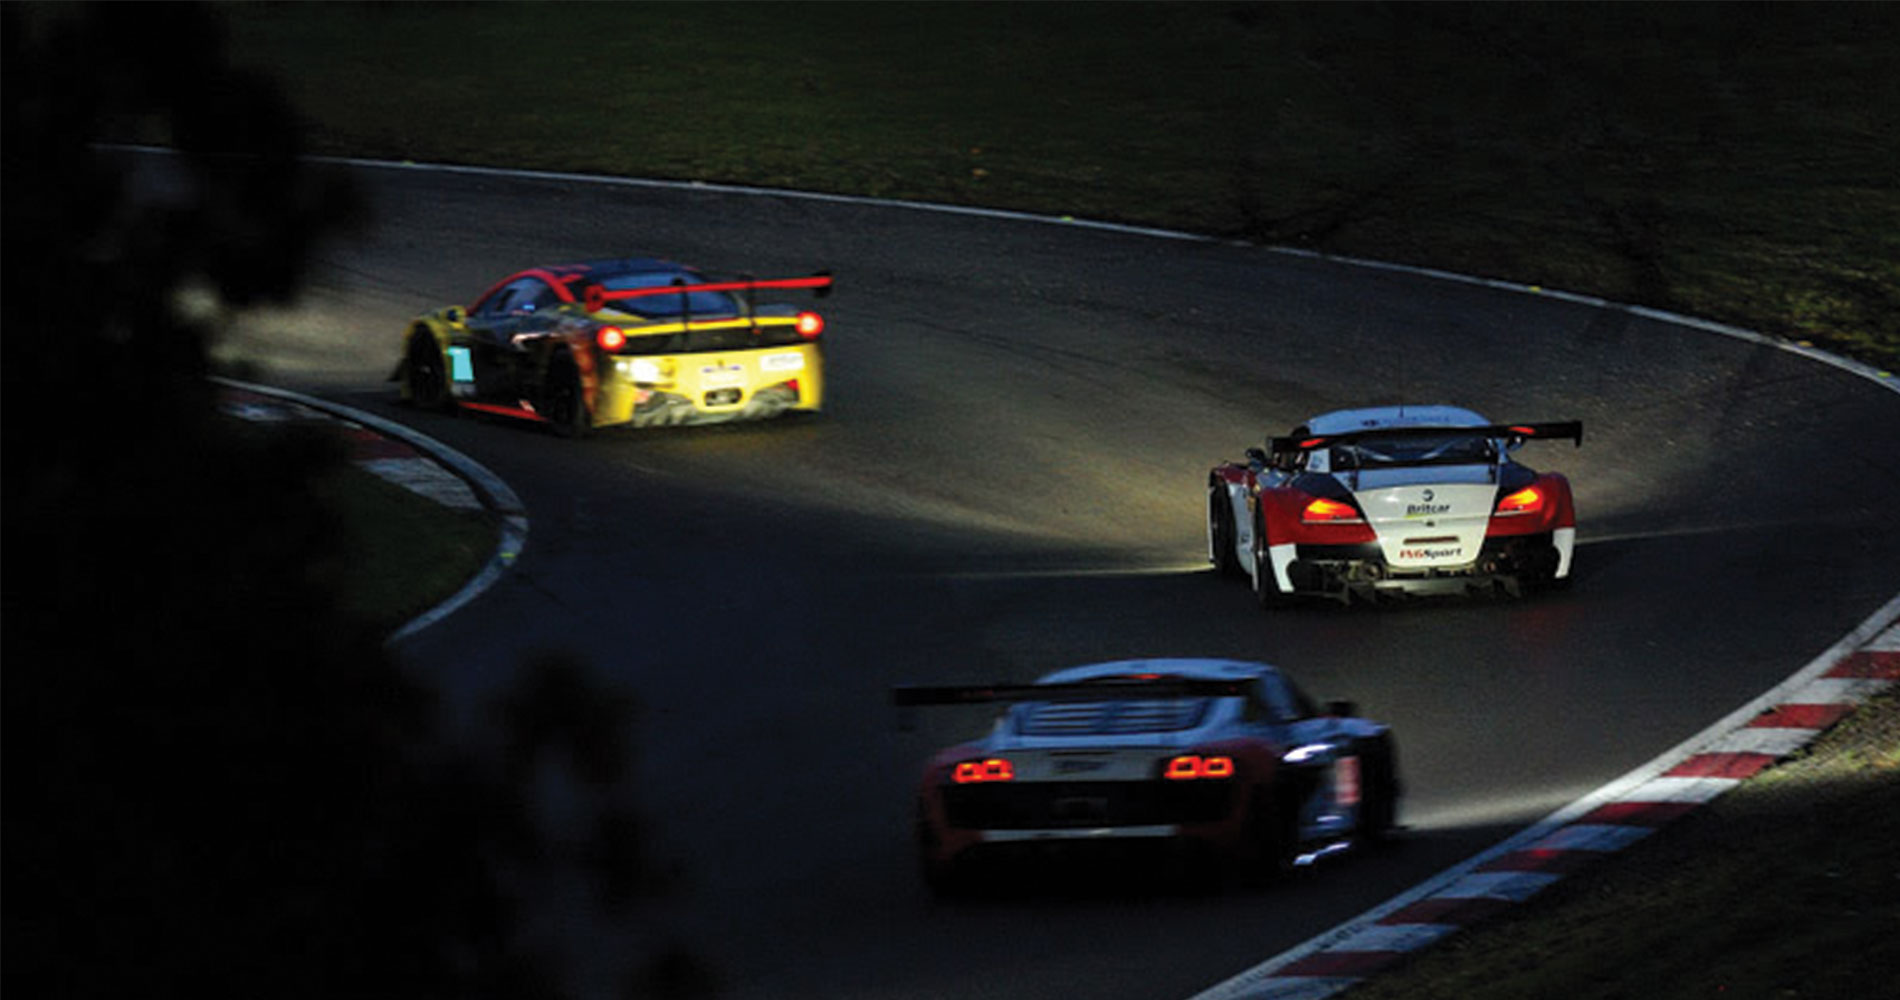 race-report-magnificent-duel-in-the-dark-motorsportdays-track-days-5